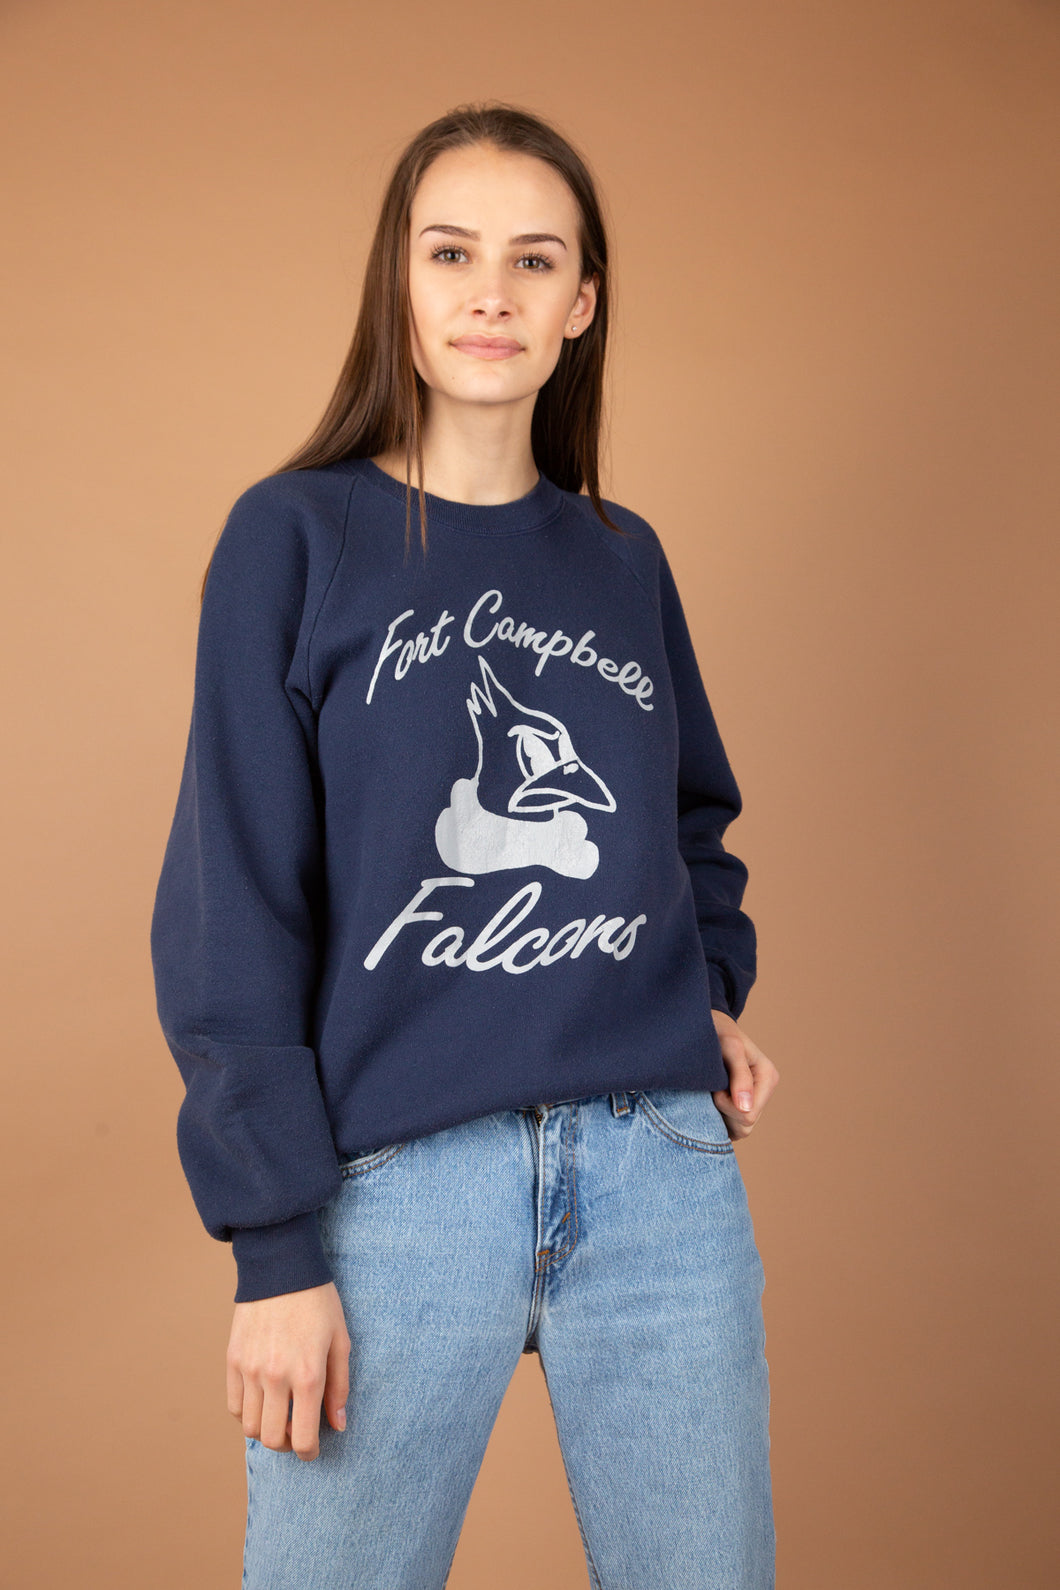 Navy blue in colour with a grey print on the front of a falcon head. 'Fort Campbell Falcons' printed on the front. Has stretched out neckline with ribbed sleeves, neckline and waistline.